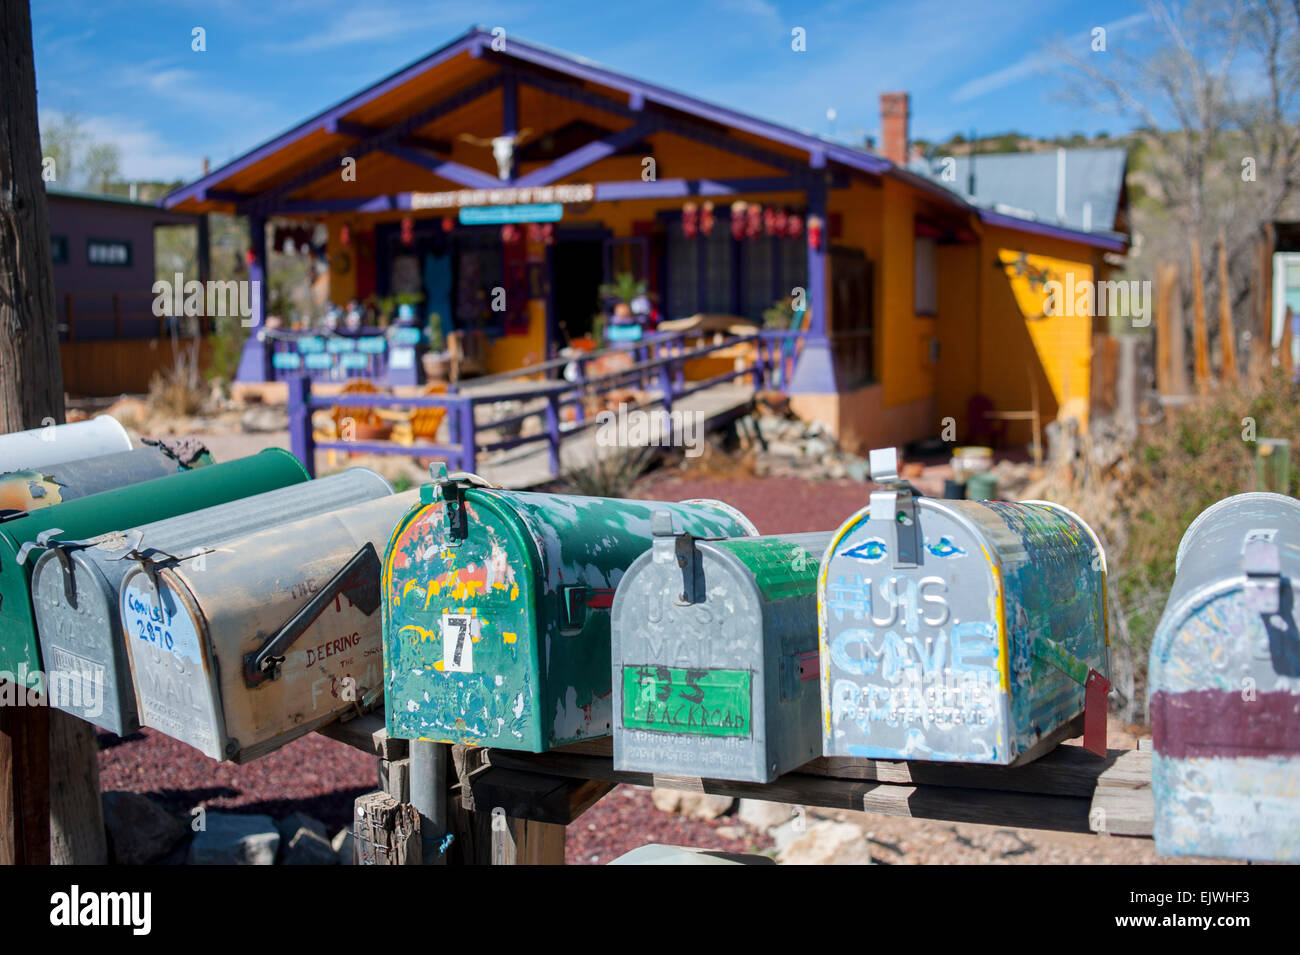 USA New Mexico NM Madrid on the Turquoise Trail mailboxes along an old coal mining town now an art community Stock Photo